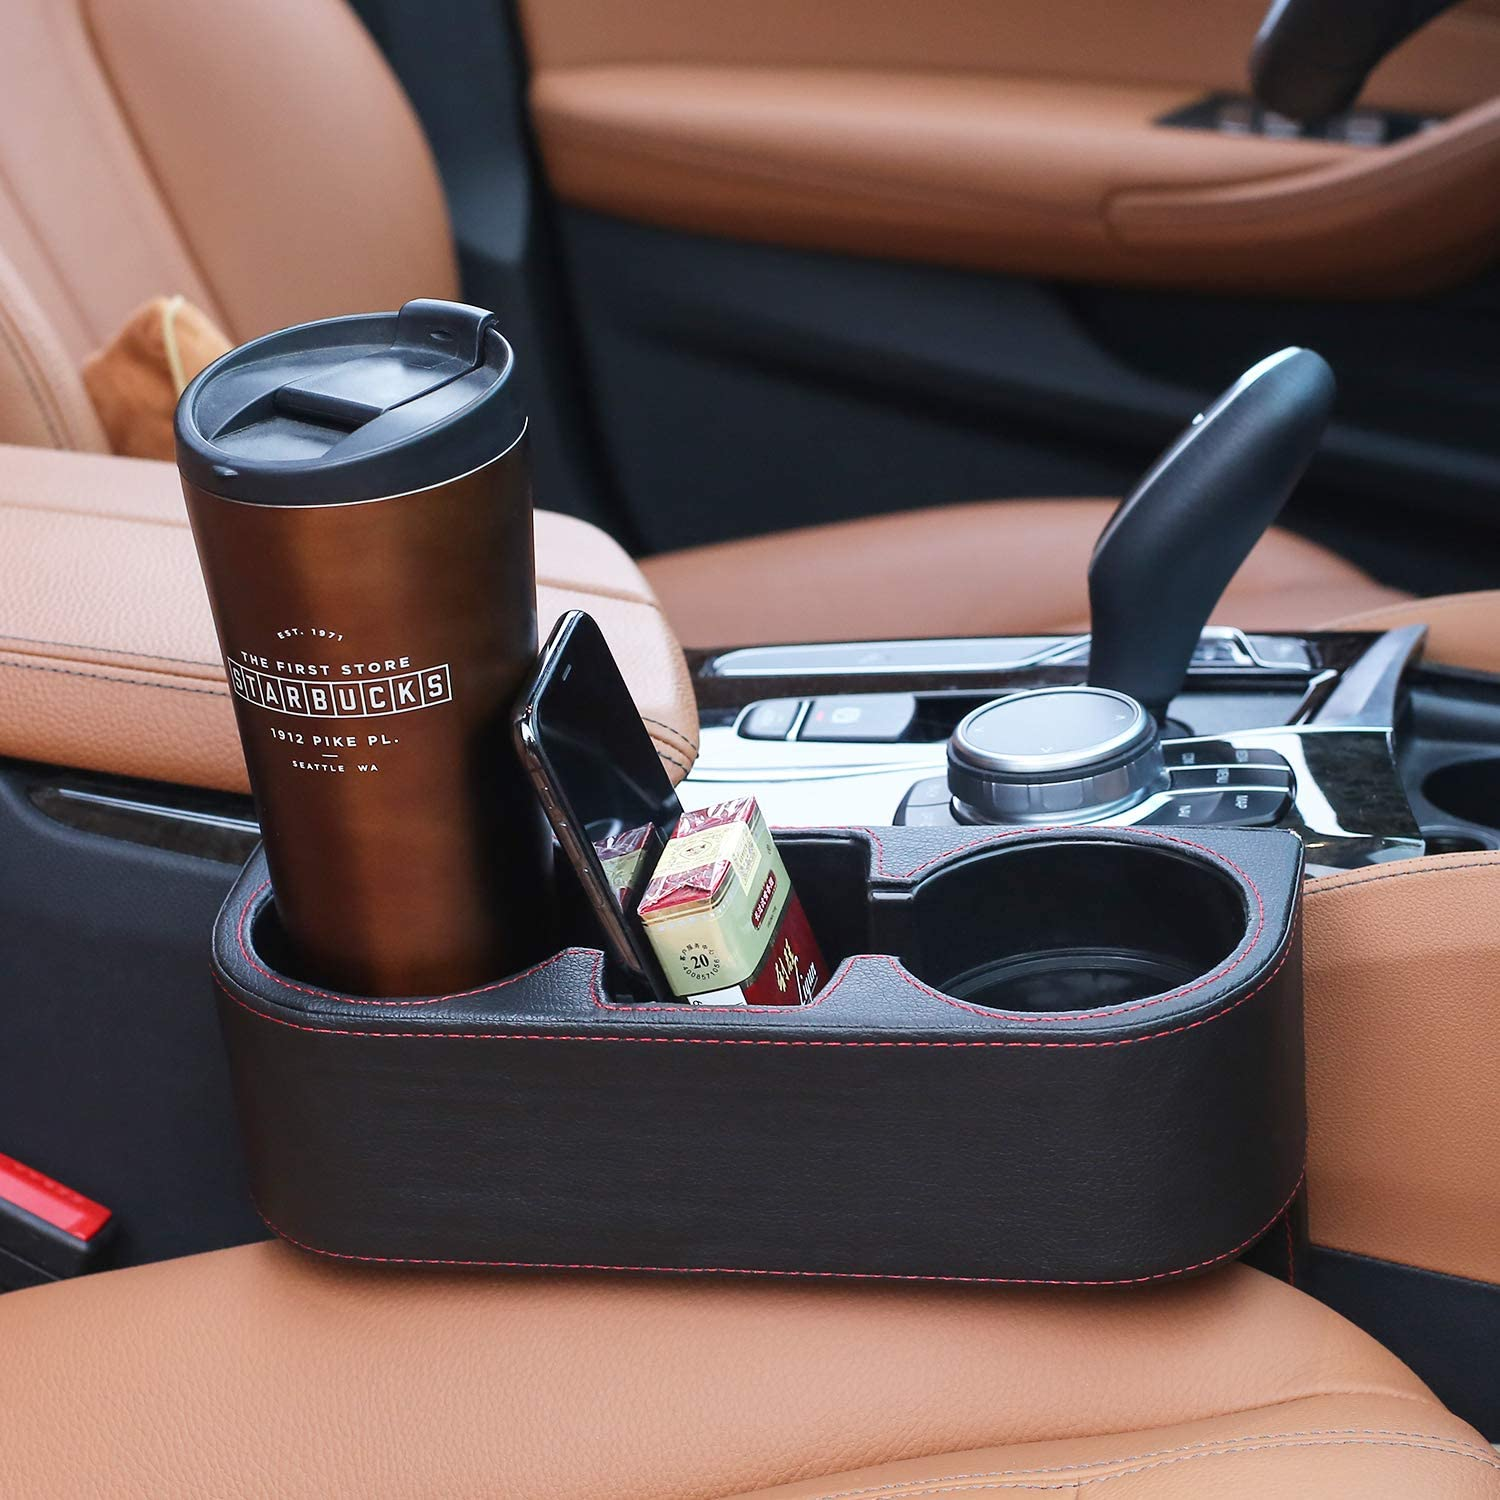 AUTODECO Multifunctional Car Cup Holder Expander PU Leather Cover with Phone Holder and Coasters for Storing and Organizing Car Drinking Cups Mug Bottle Cans Phone Key Wallet Coin etc.